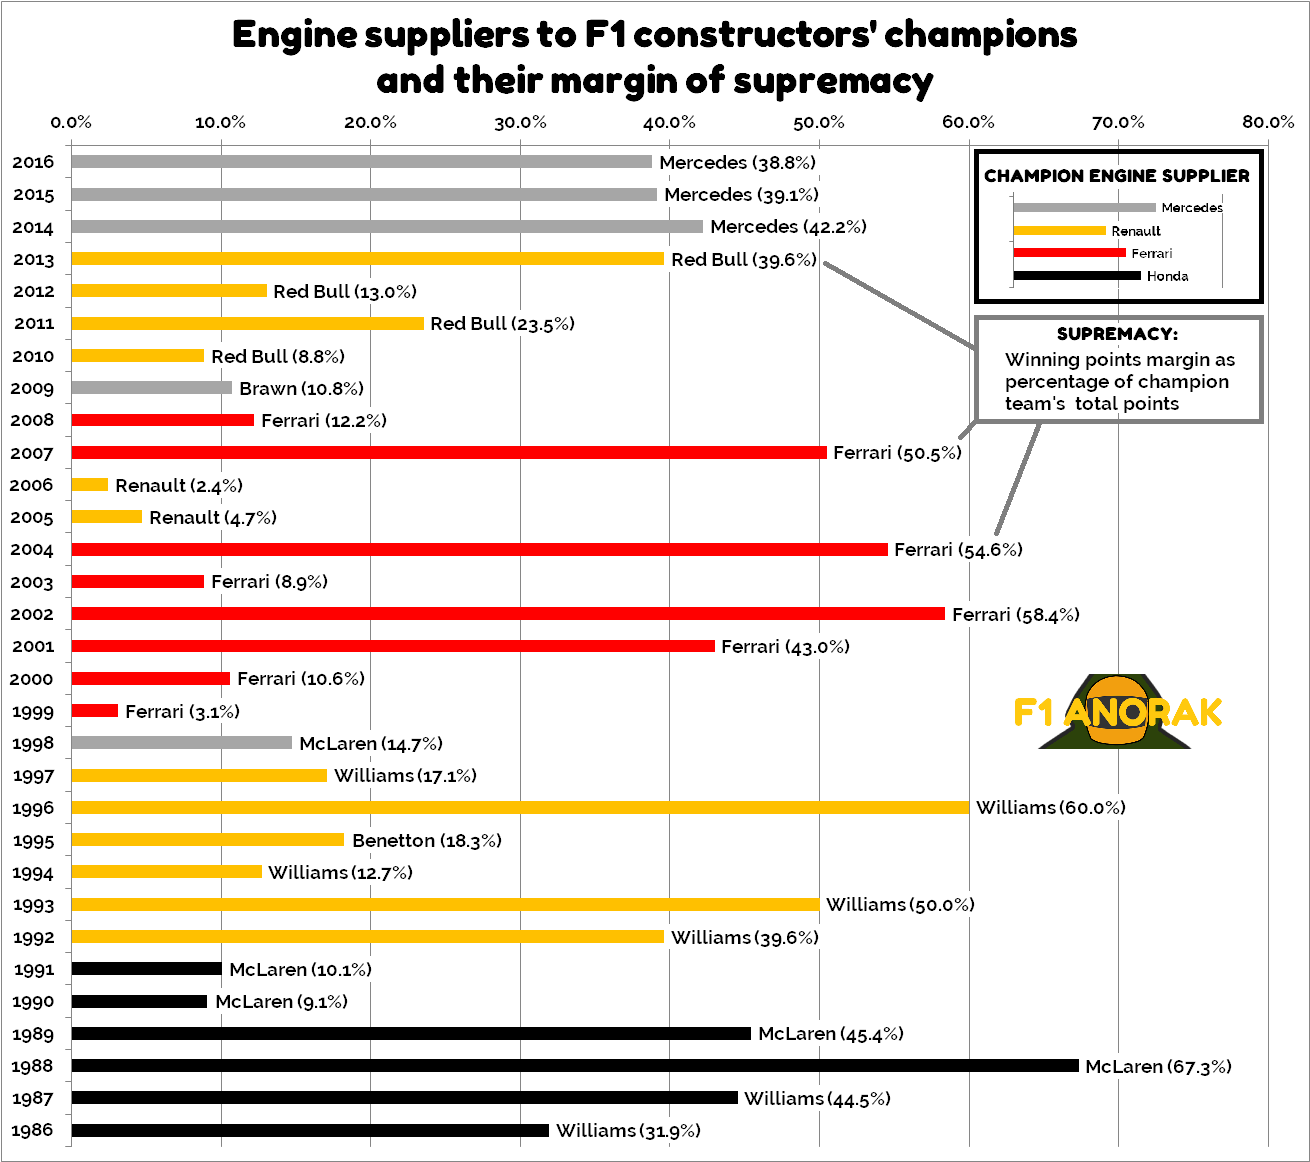 Bar chart showing engine suppliers to Formula One constructors' champions, and their margin of supremacy